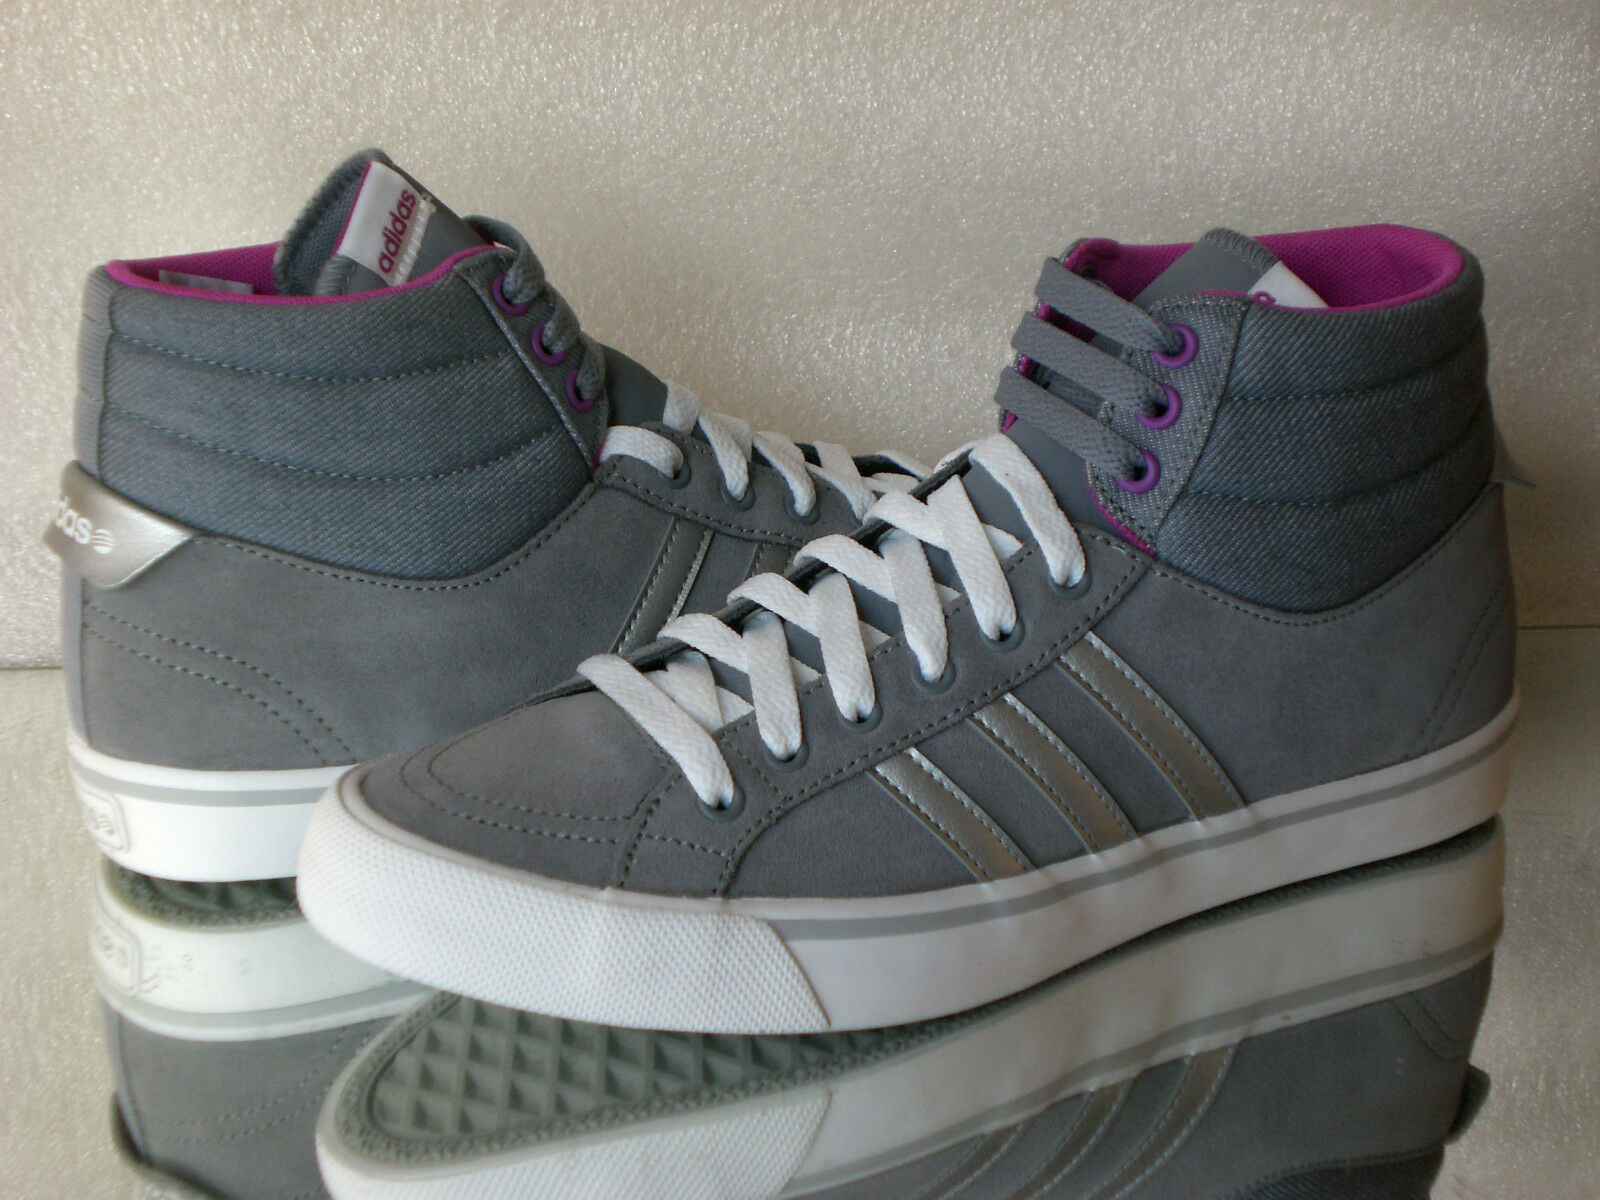 ADIDAS Neo PARK ST MID W F97726 High-Top Sneakers Wildleder  grey purple Neu